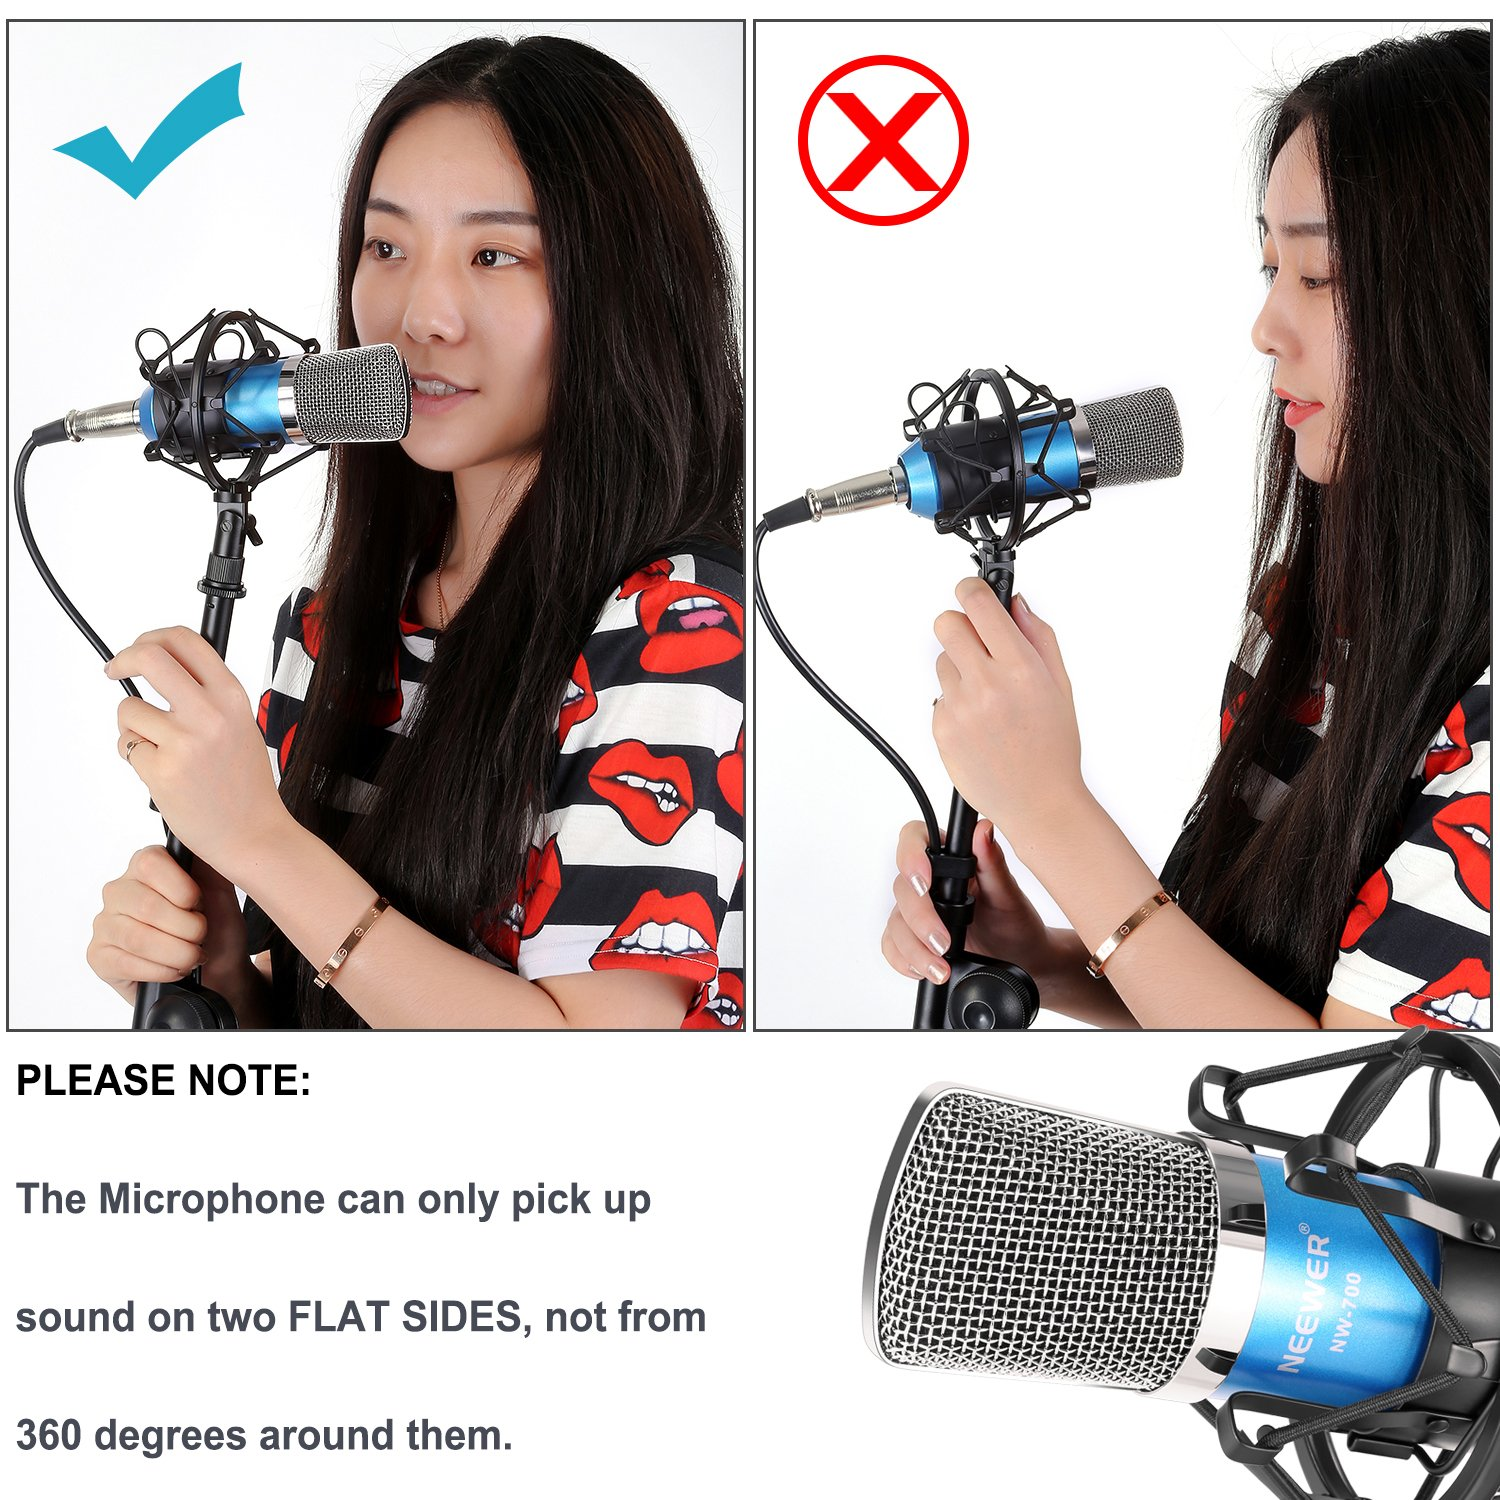 Neewer NW-700 Professional Studio Broadcasting Recording Condenser Microphone & NW-35 Adjustable Recording Microphone Suspension Scissor Arm Stand with Shock Mount and Mounting Clamp Kit by Neewer (Image #7)